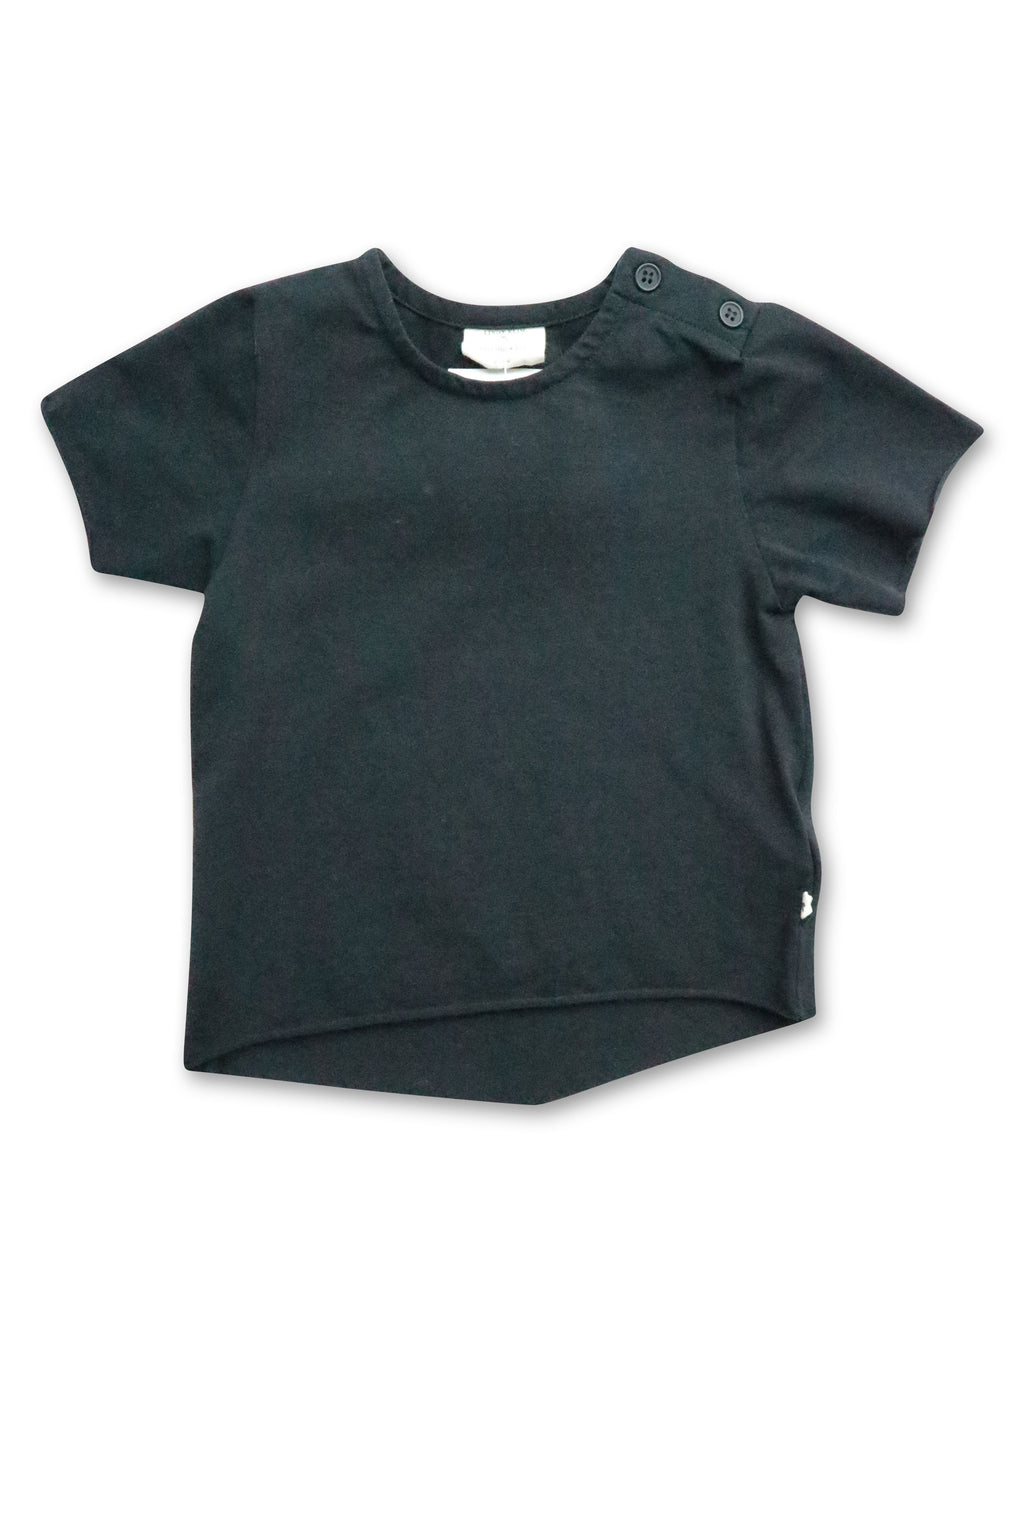 Goldie & Ace T-Shirt size 0 (6-12M)